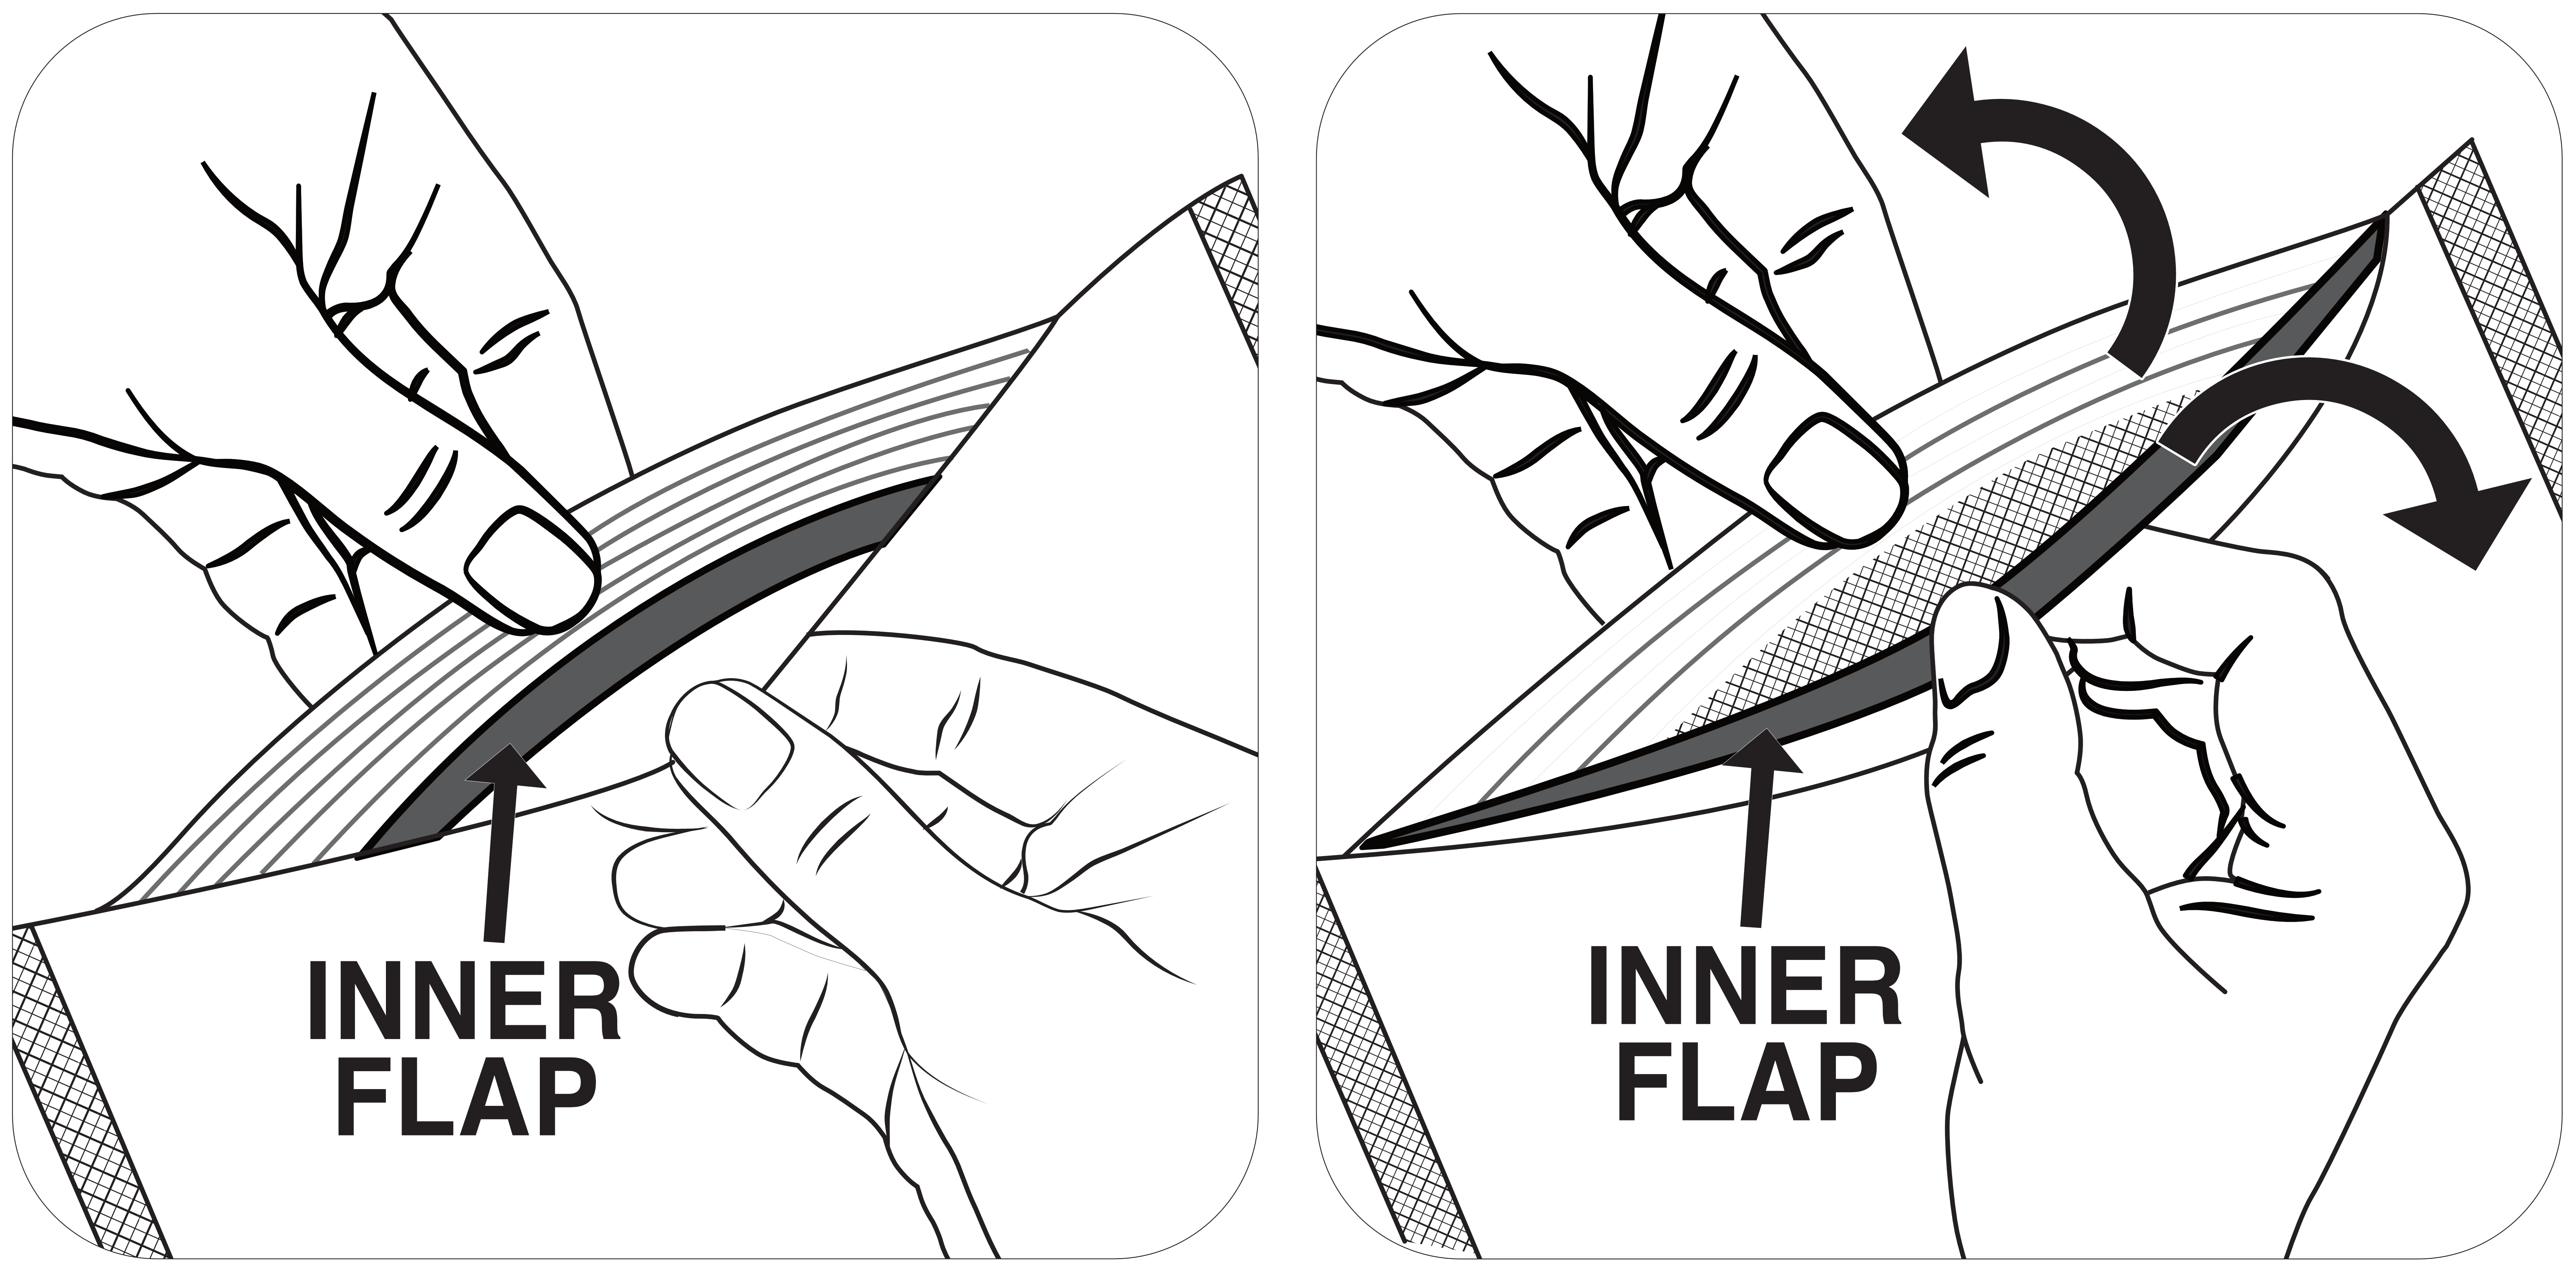 pinch inner flaps and pull apart